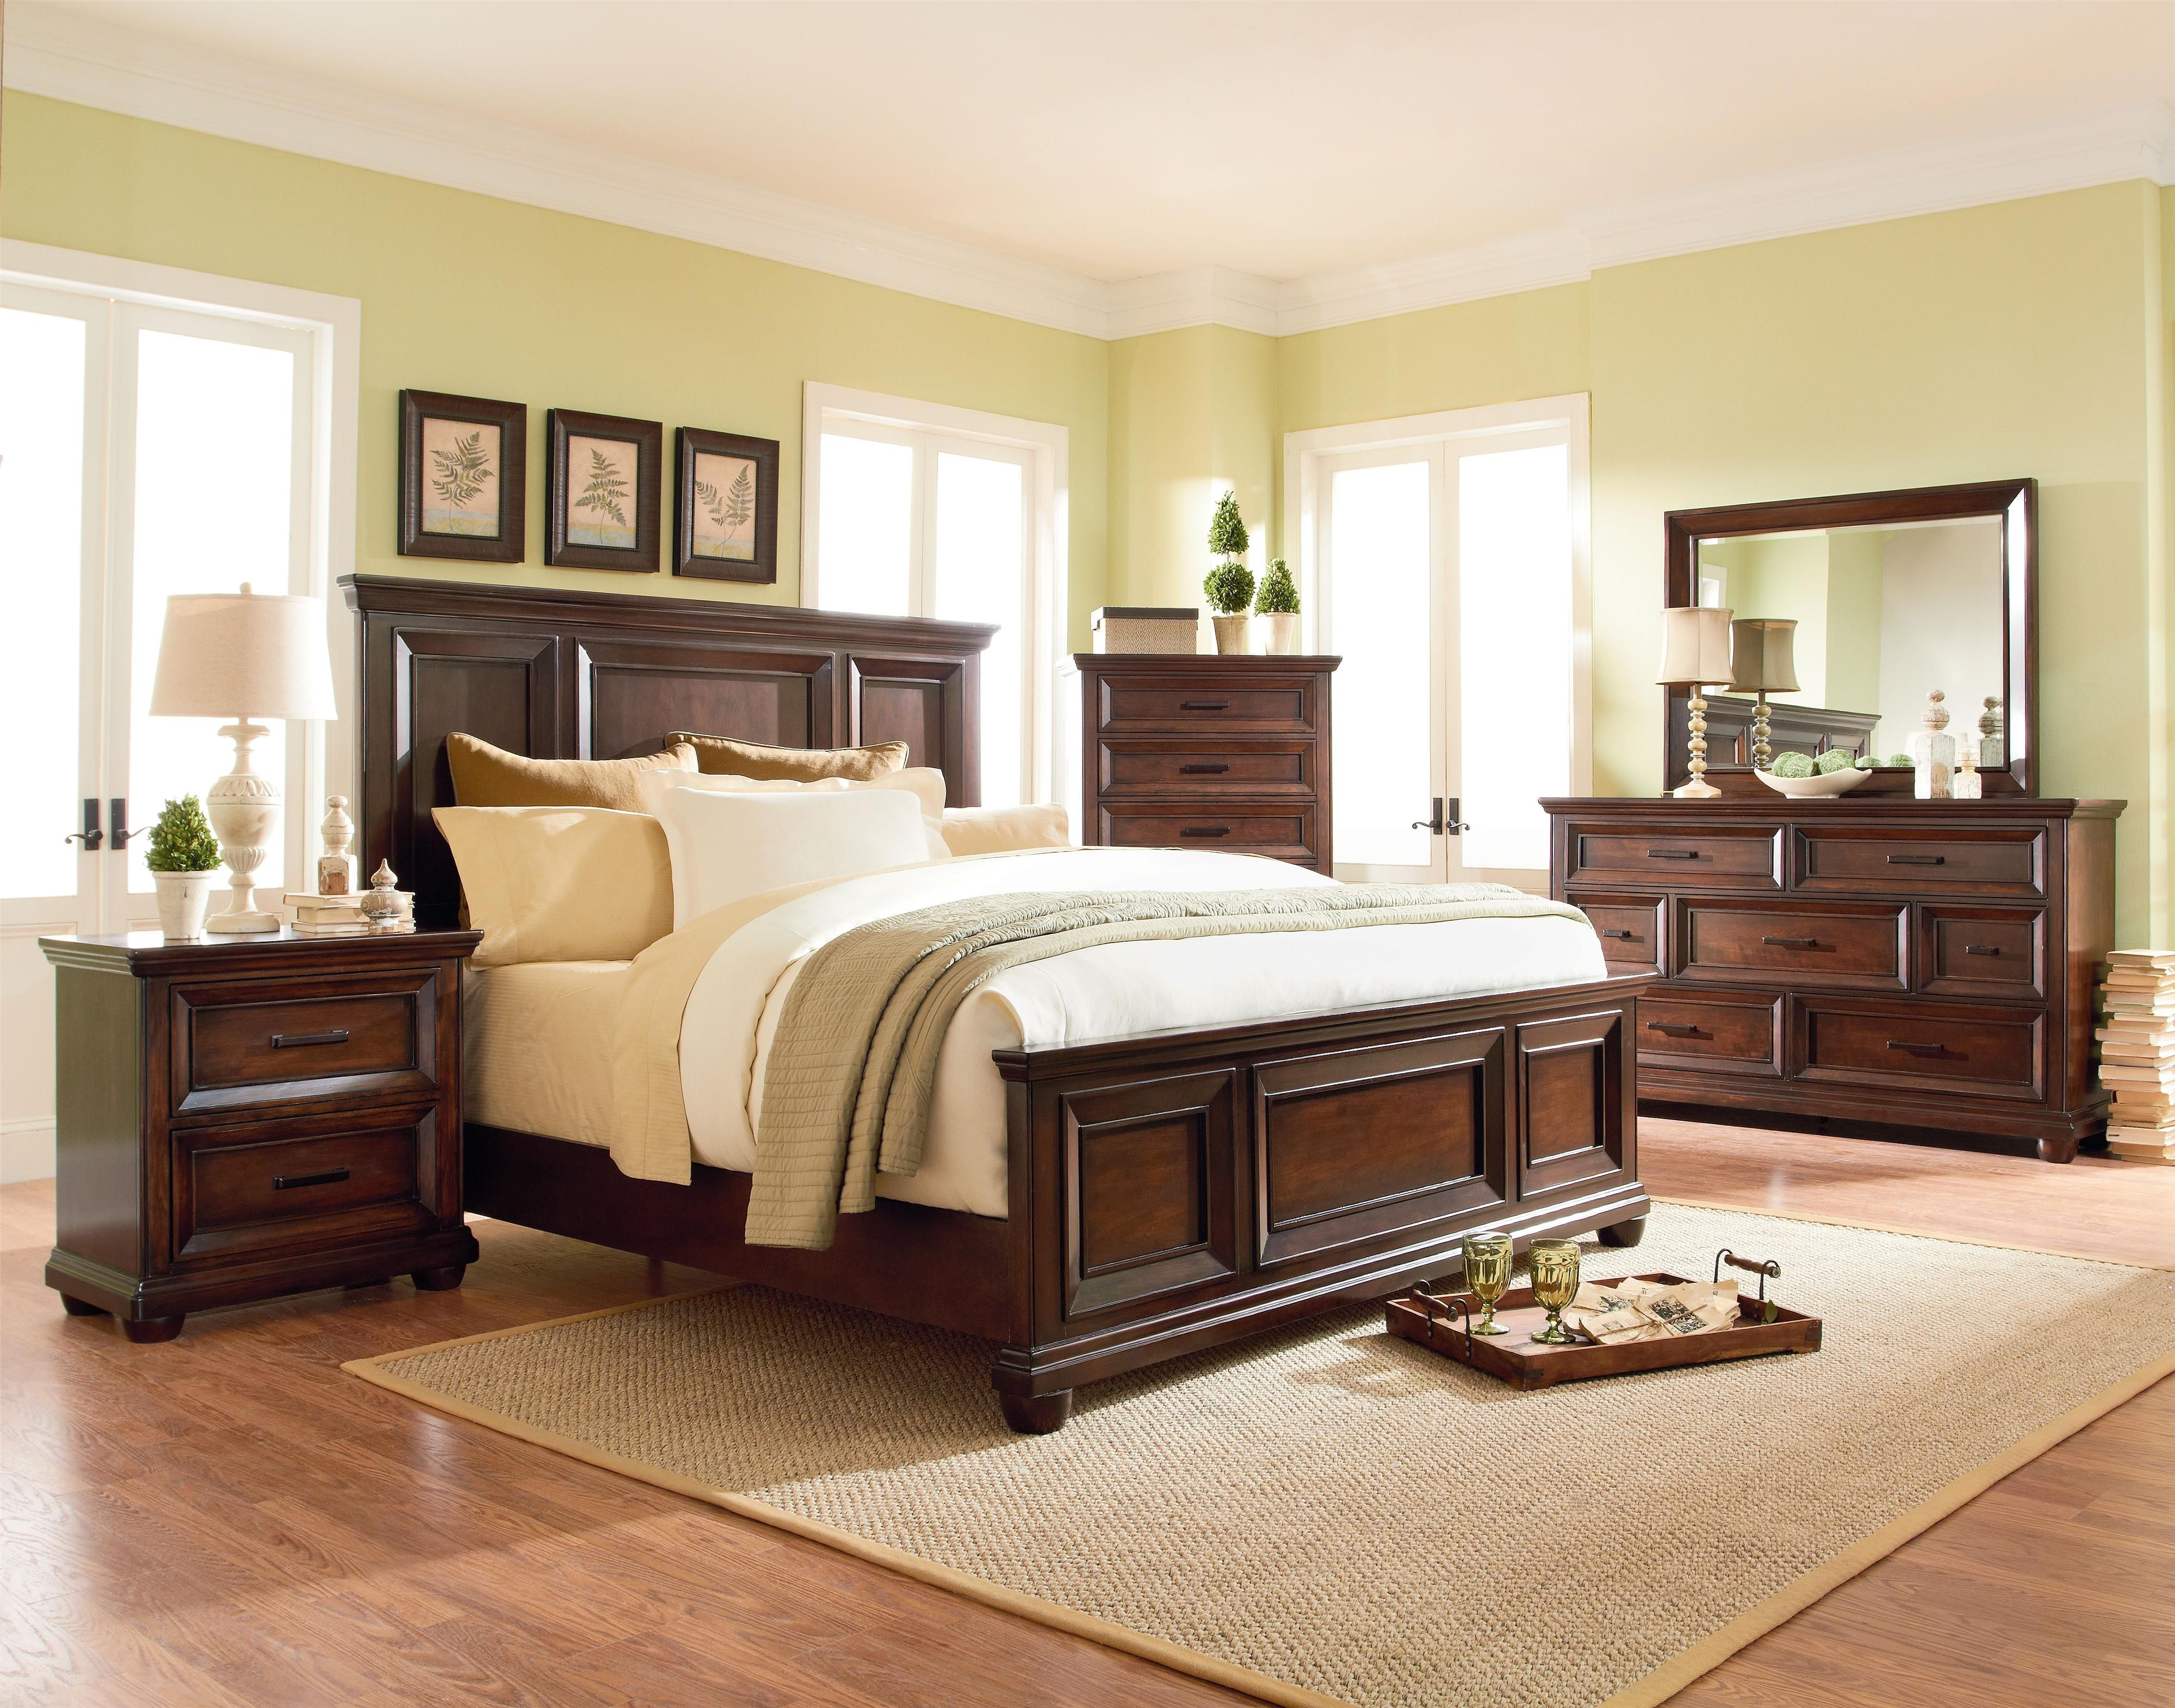 Pin by joy olmsted on master bedroom ideas pinterest king